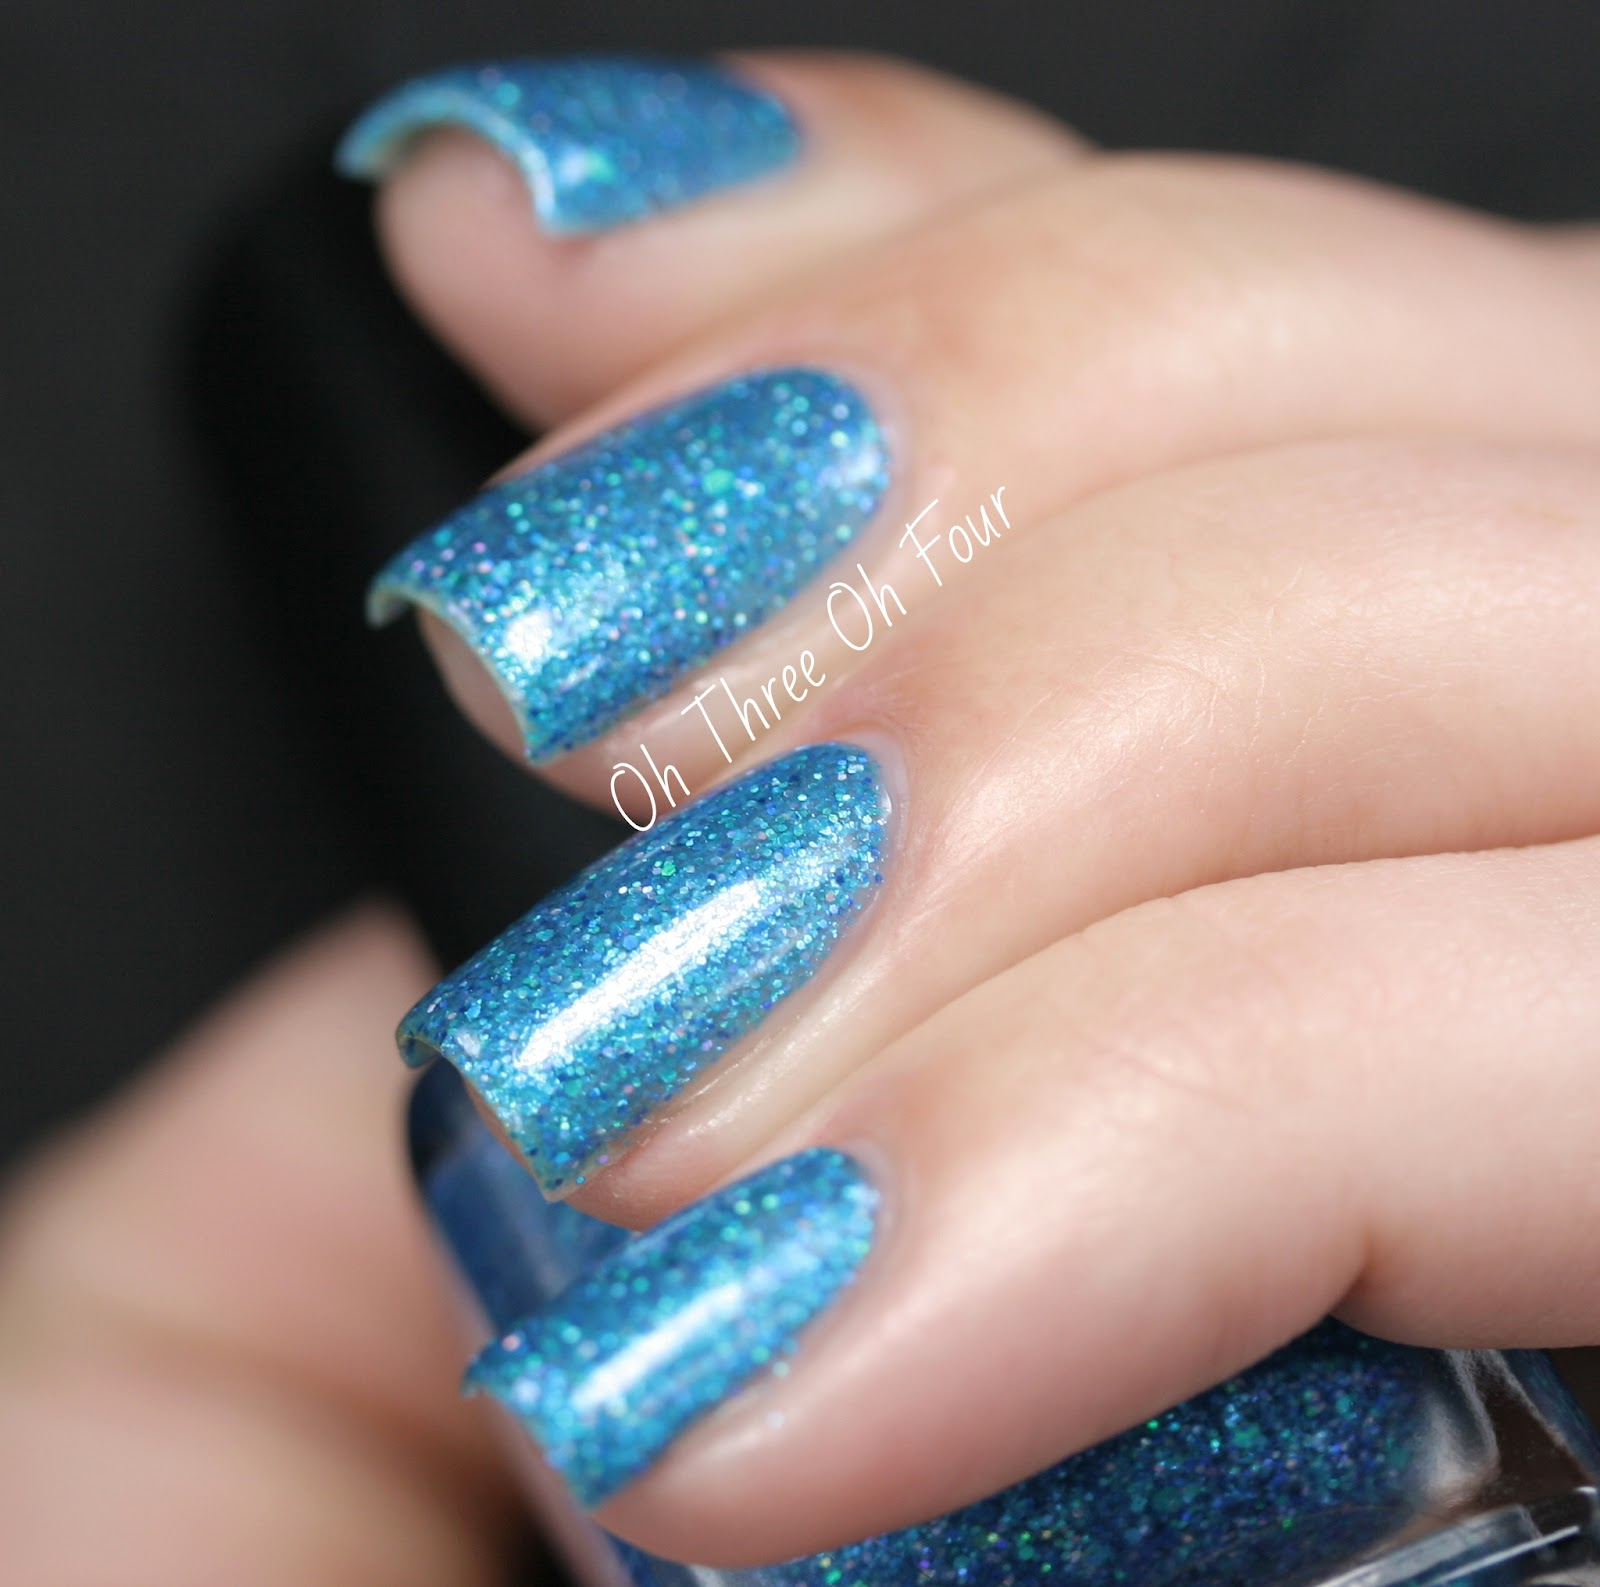 Rain City Lacquer Mermaid's Melody swatch